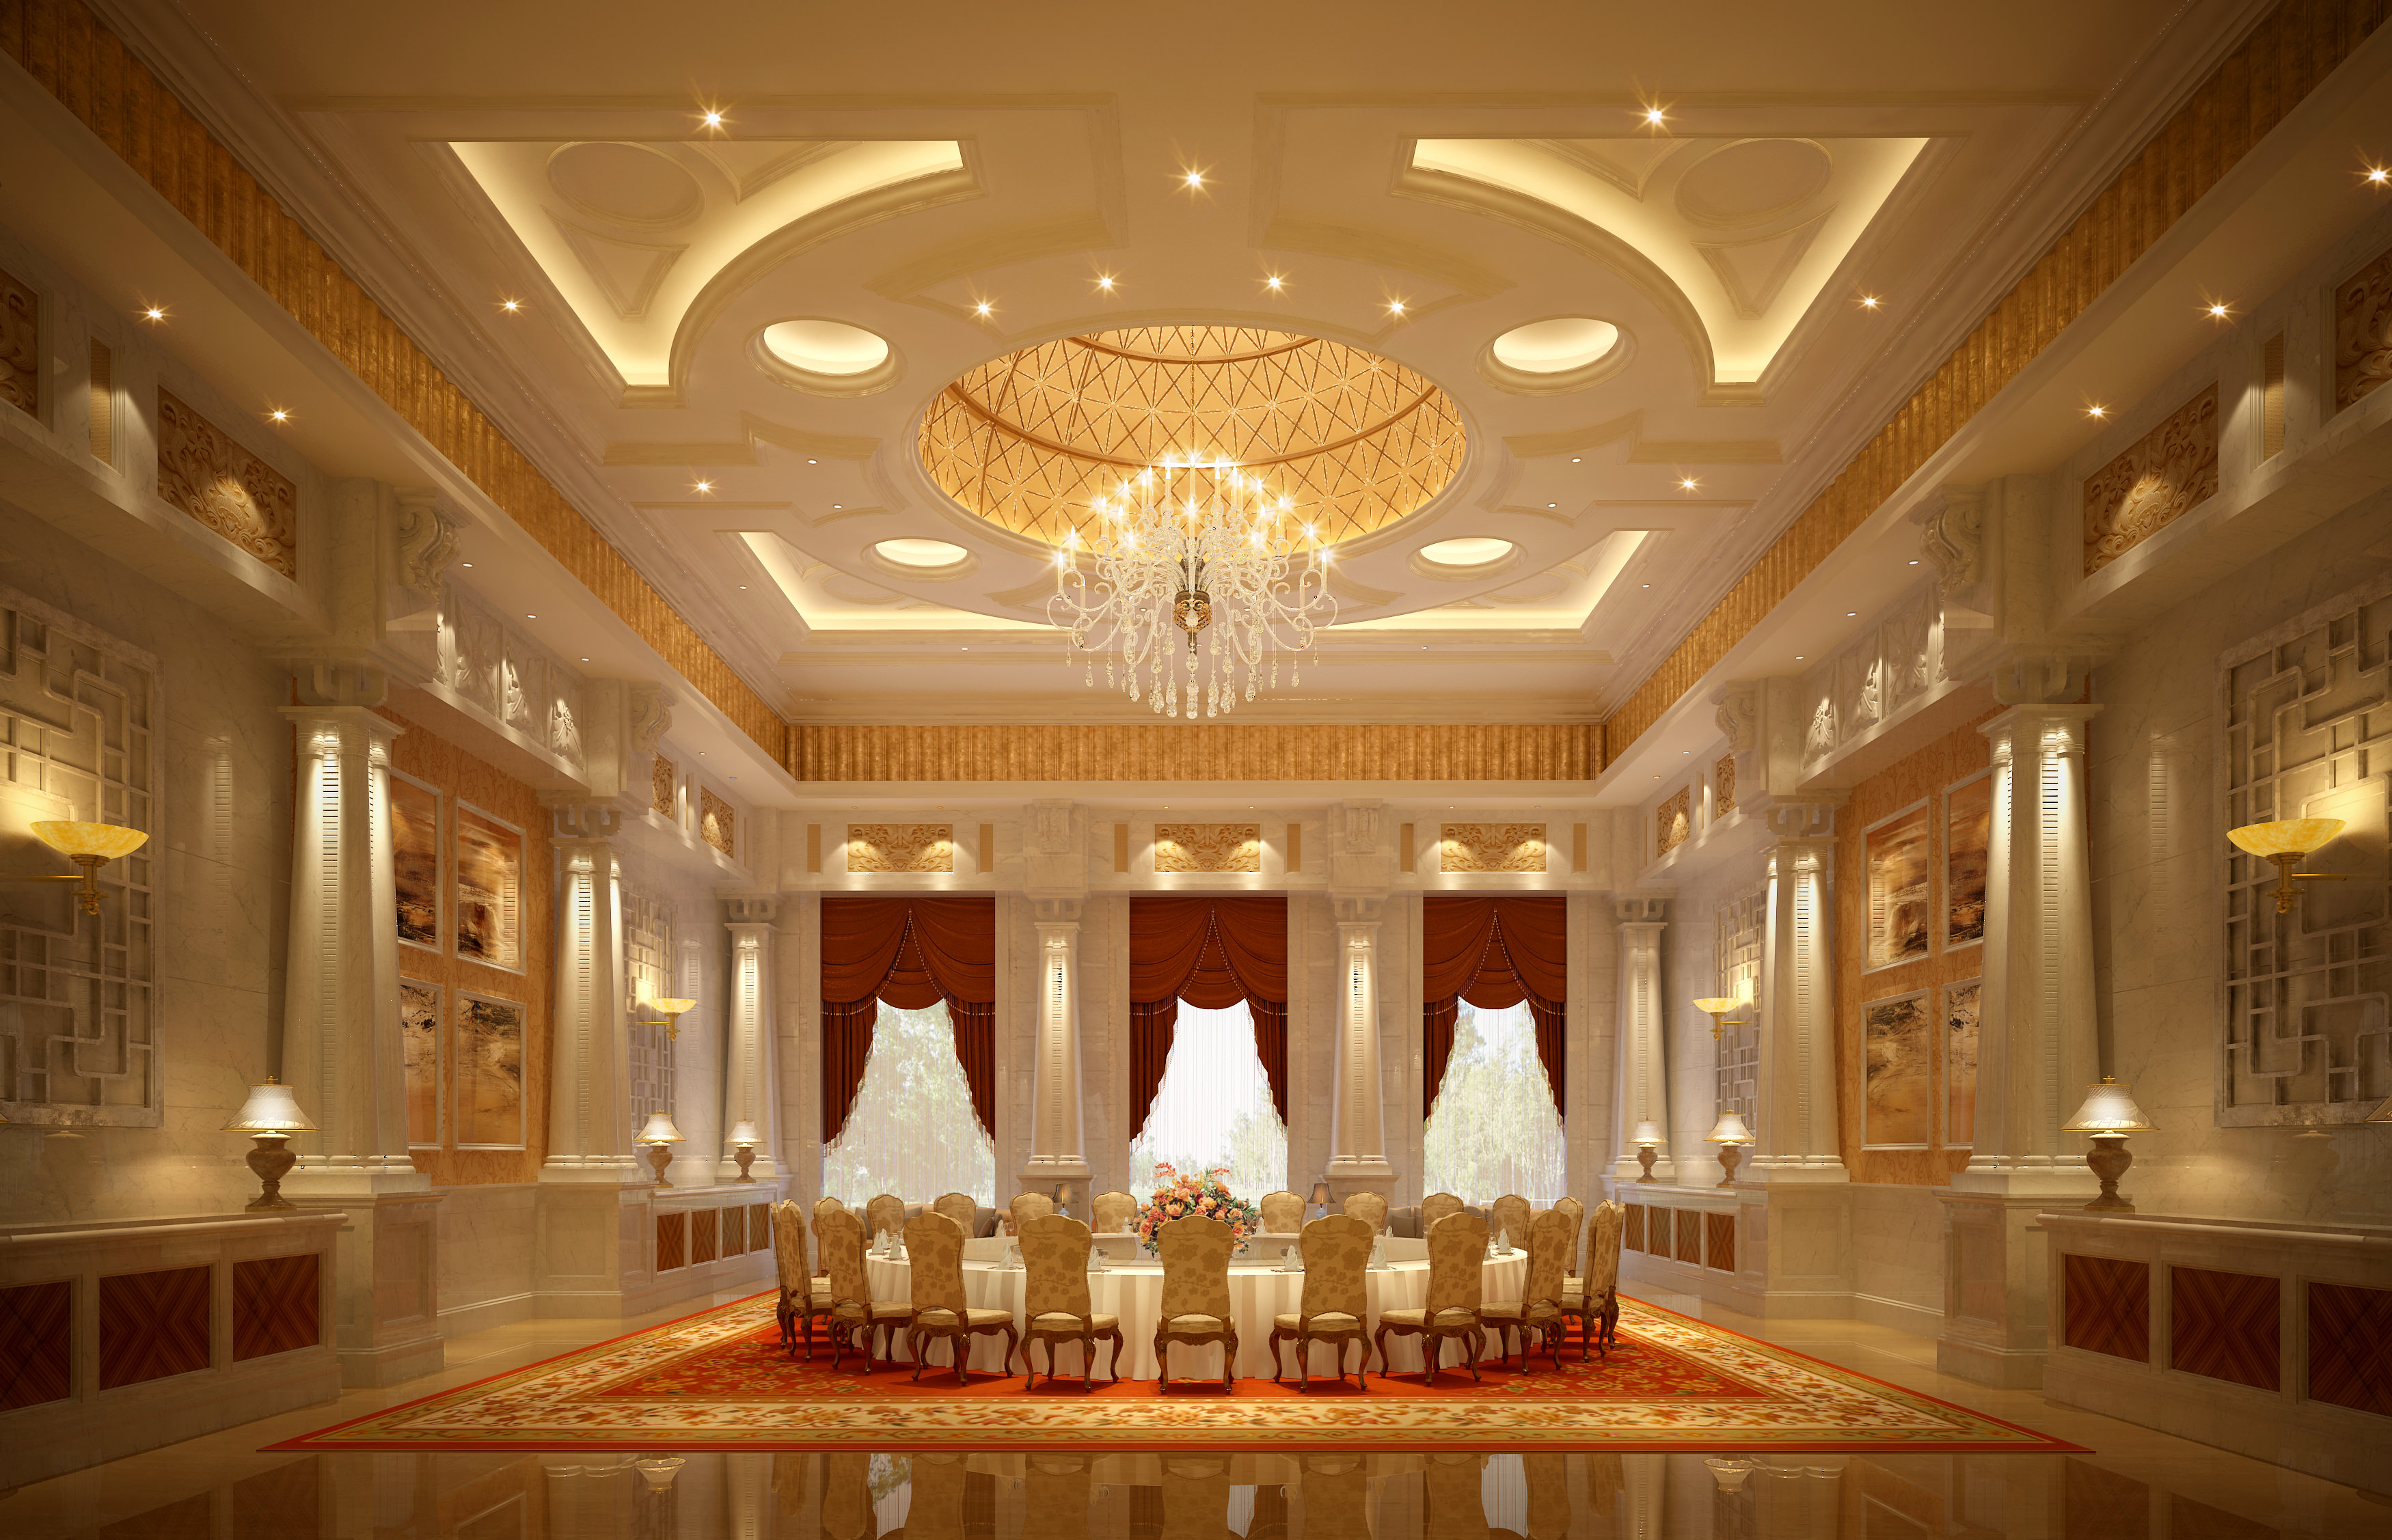 Banquet hall reception area download 3d house - Luxury Banquet Hall Interior 3d Model Max 1